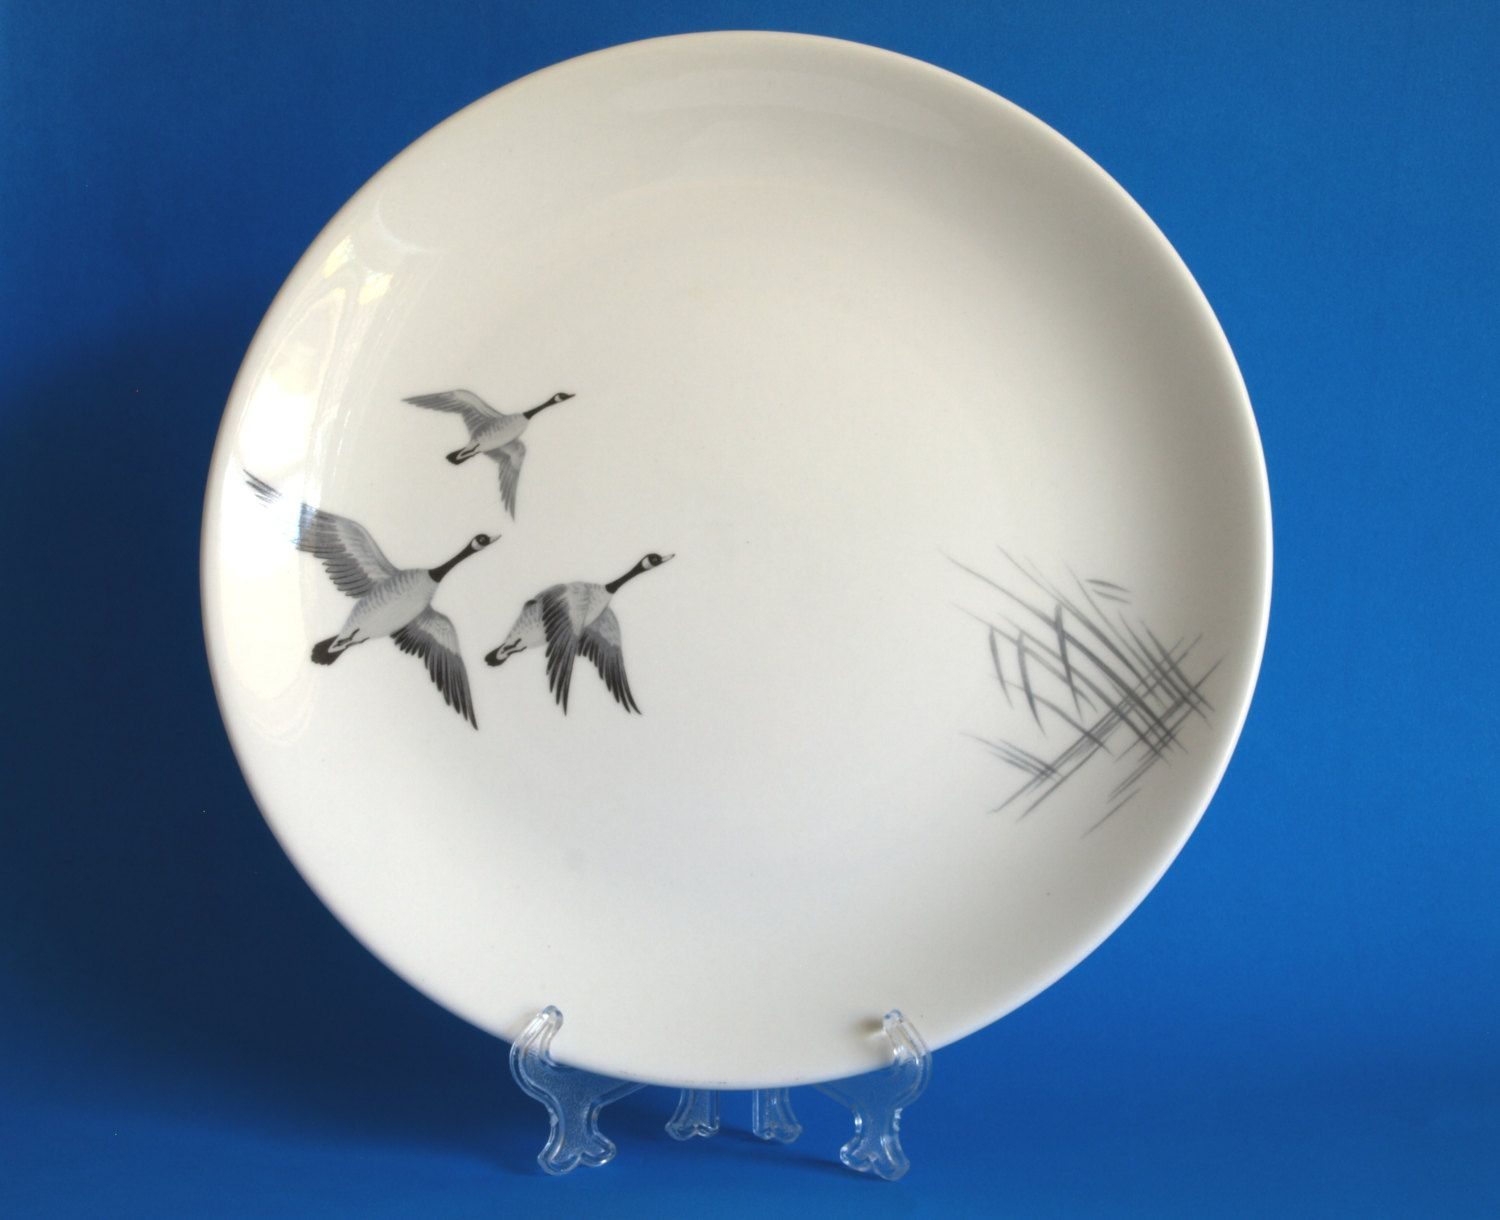 Johnson of Australia Flying Geese Dinner Plate - Johnson Brothers Goose Plate - 1950s - Made in Australia & Johnson of Australia Flying Geese Dinner Plate - Johnson Brothers ...